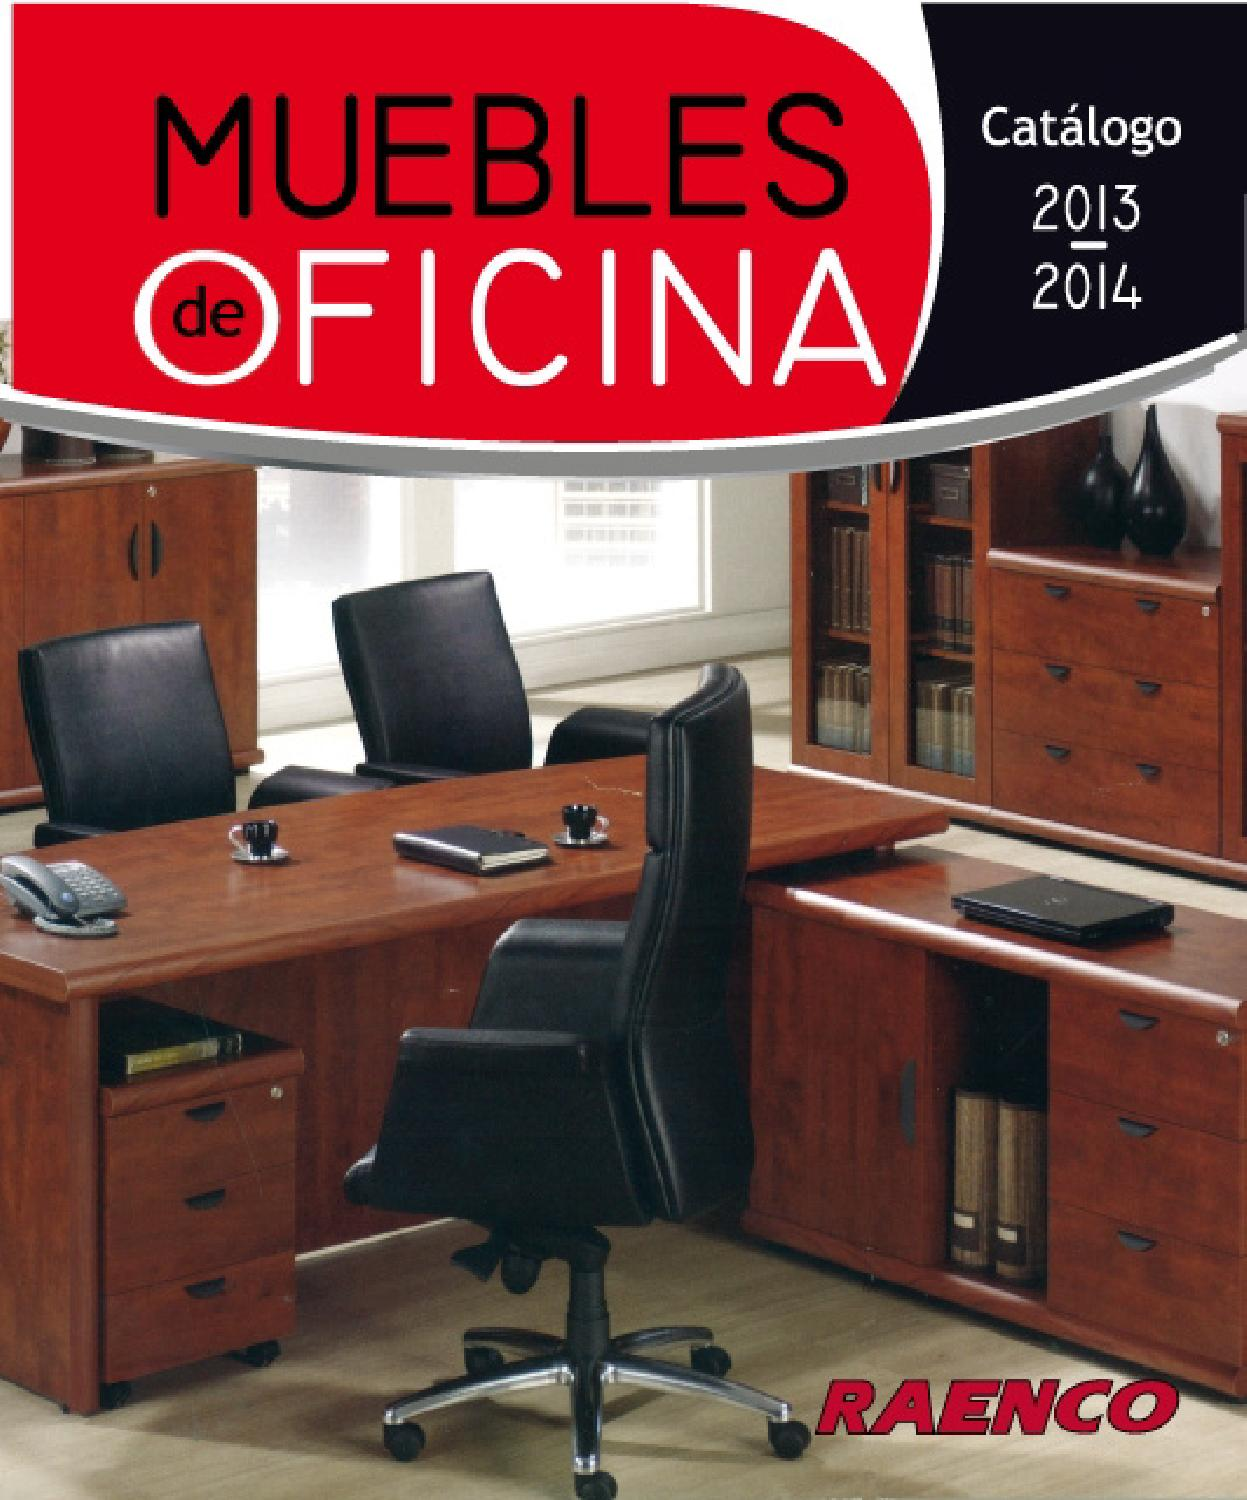 Cat logo raenco oficina by interiores estilo issuu for Muebles de oficina tomelloso